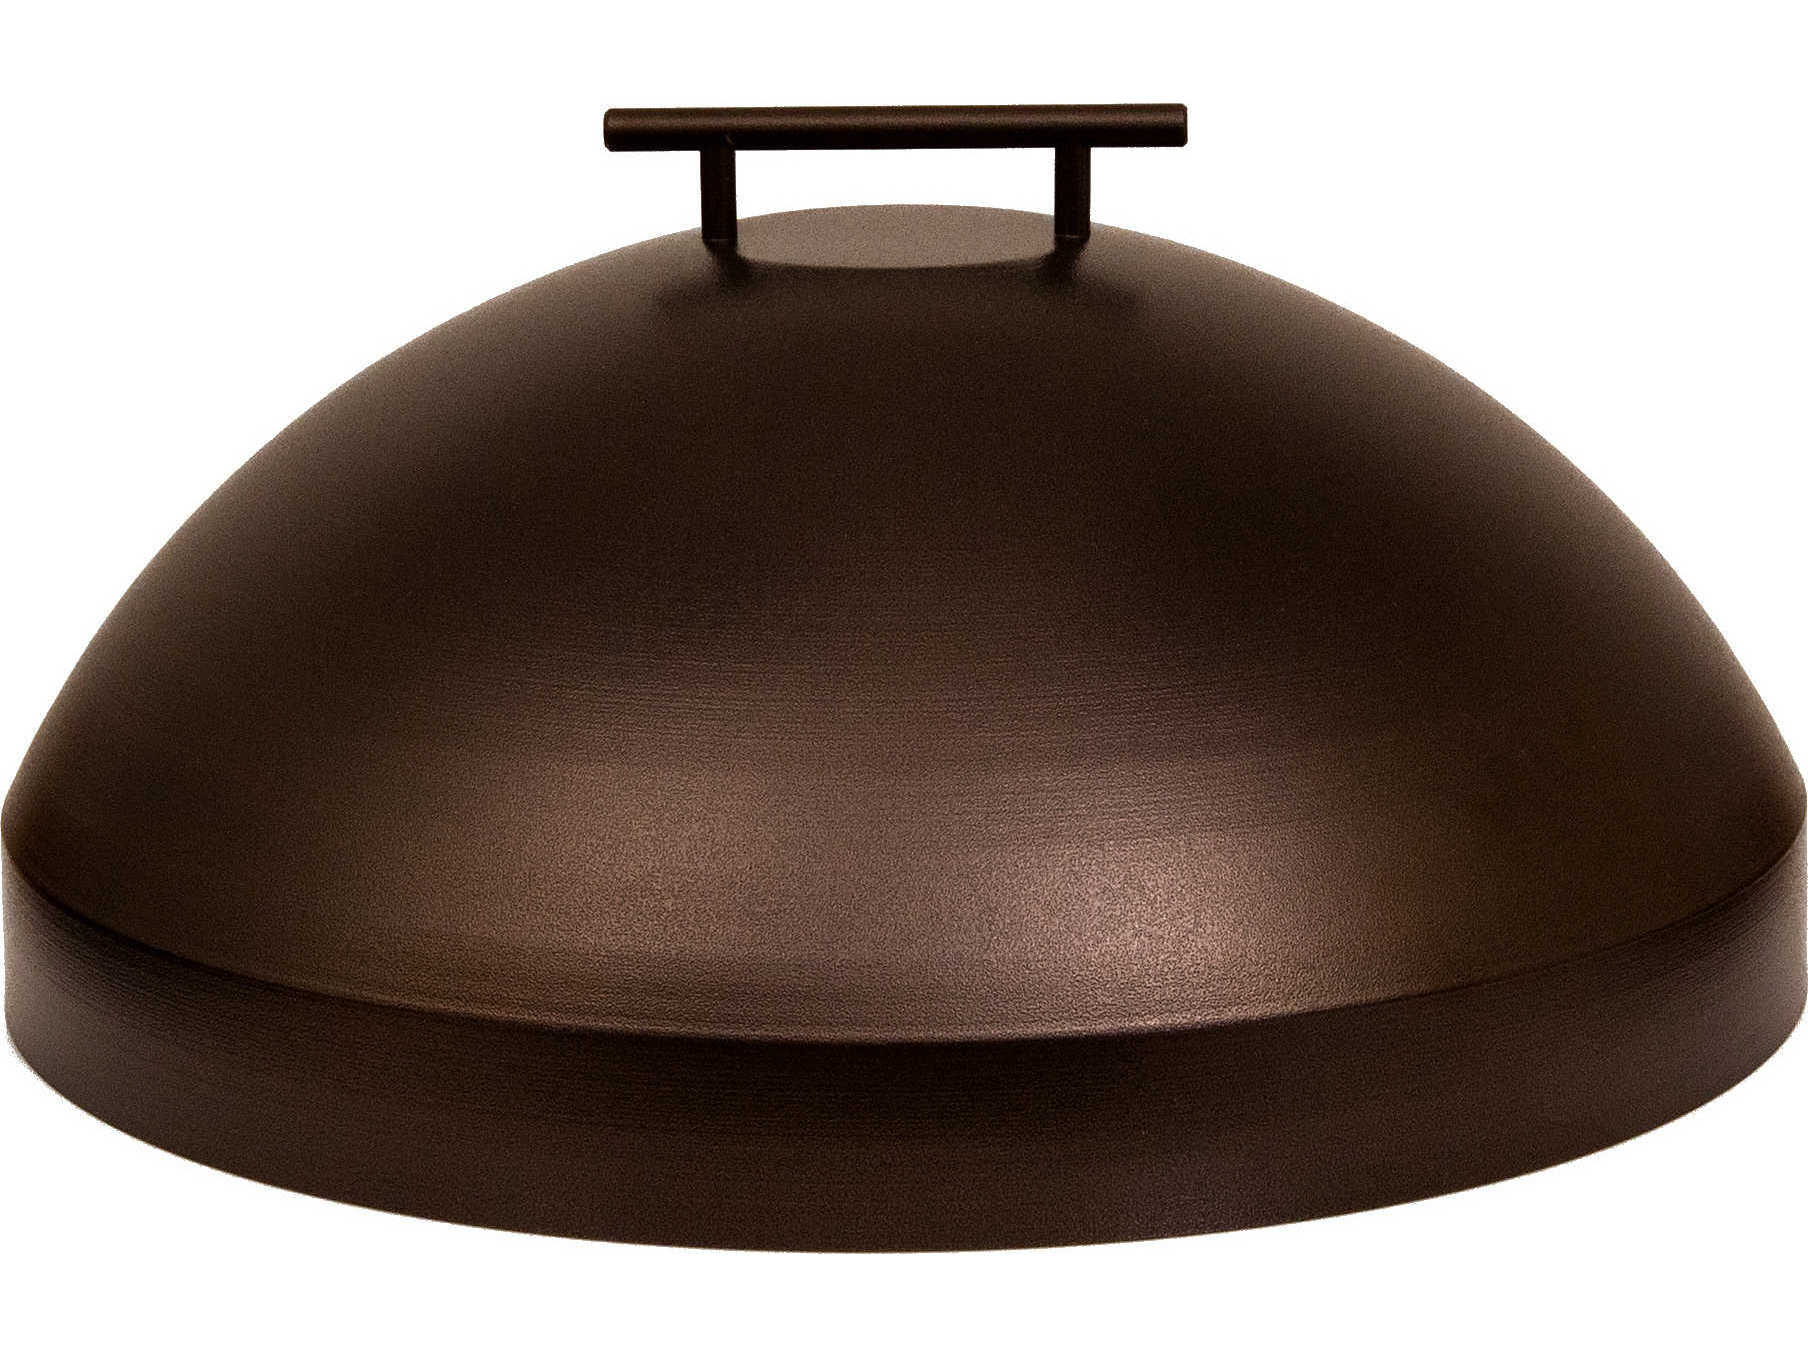 OW Lee Casual Fireside Wrought Iron Round Burner 20 Fire Pit Cover  5112S